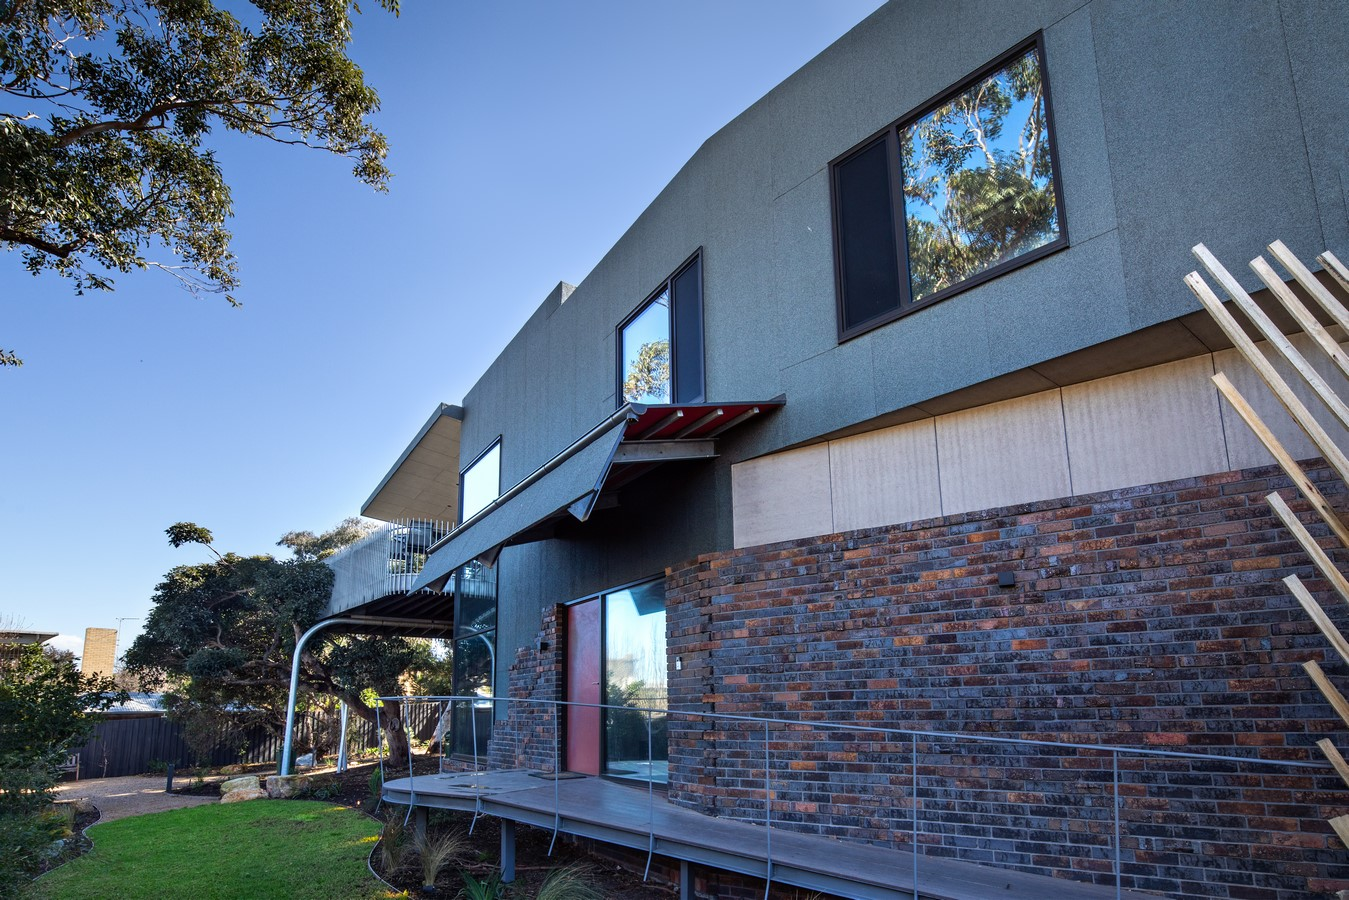 Bowy House by meaden architecture and interiors - Sheet3